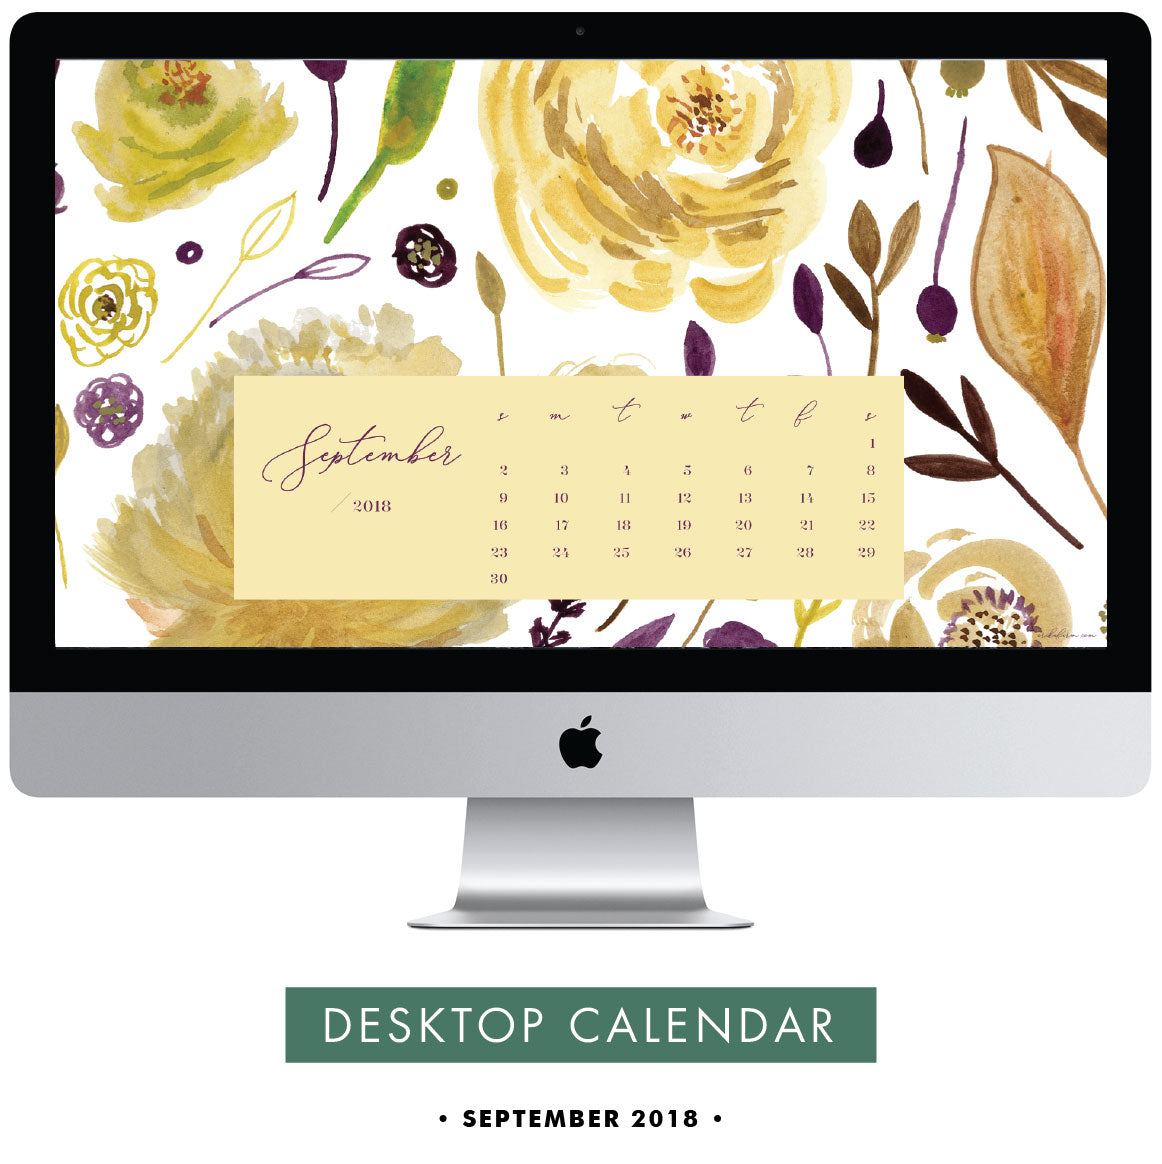 Download free September 2018 desktop calendar wallpaper by Erika Firm